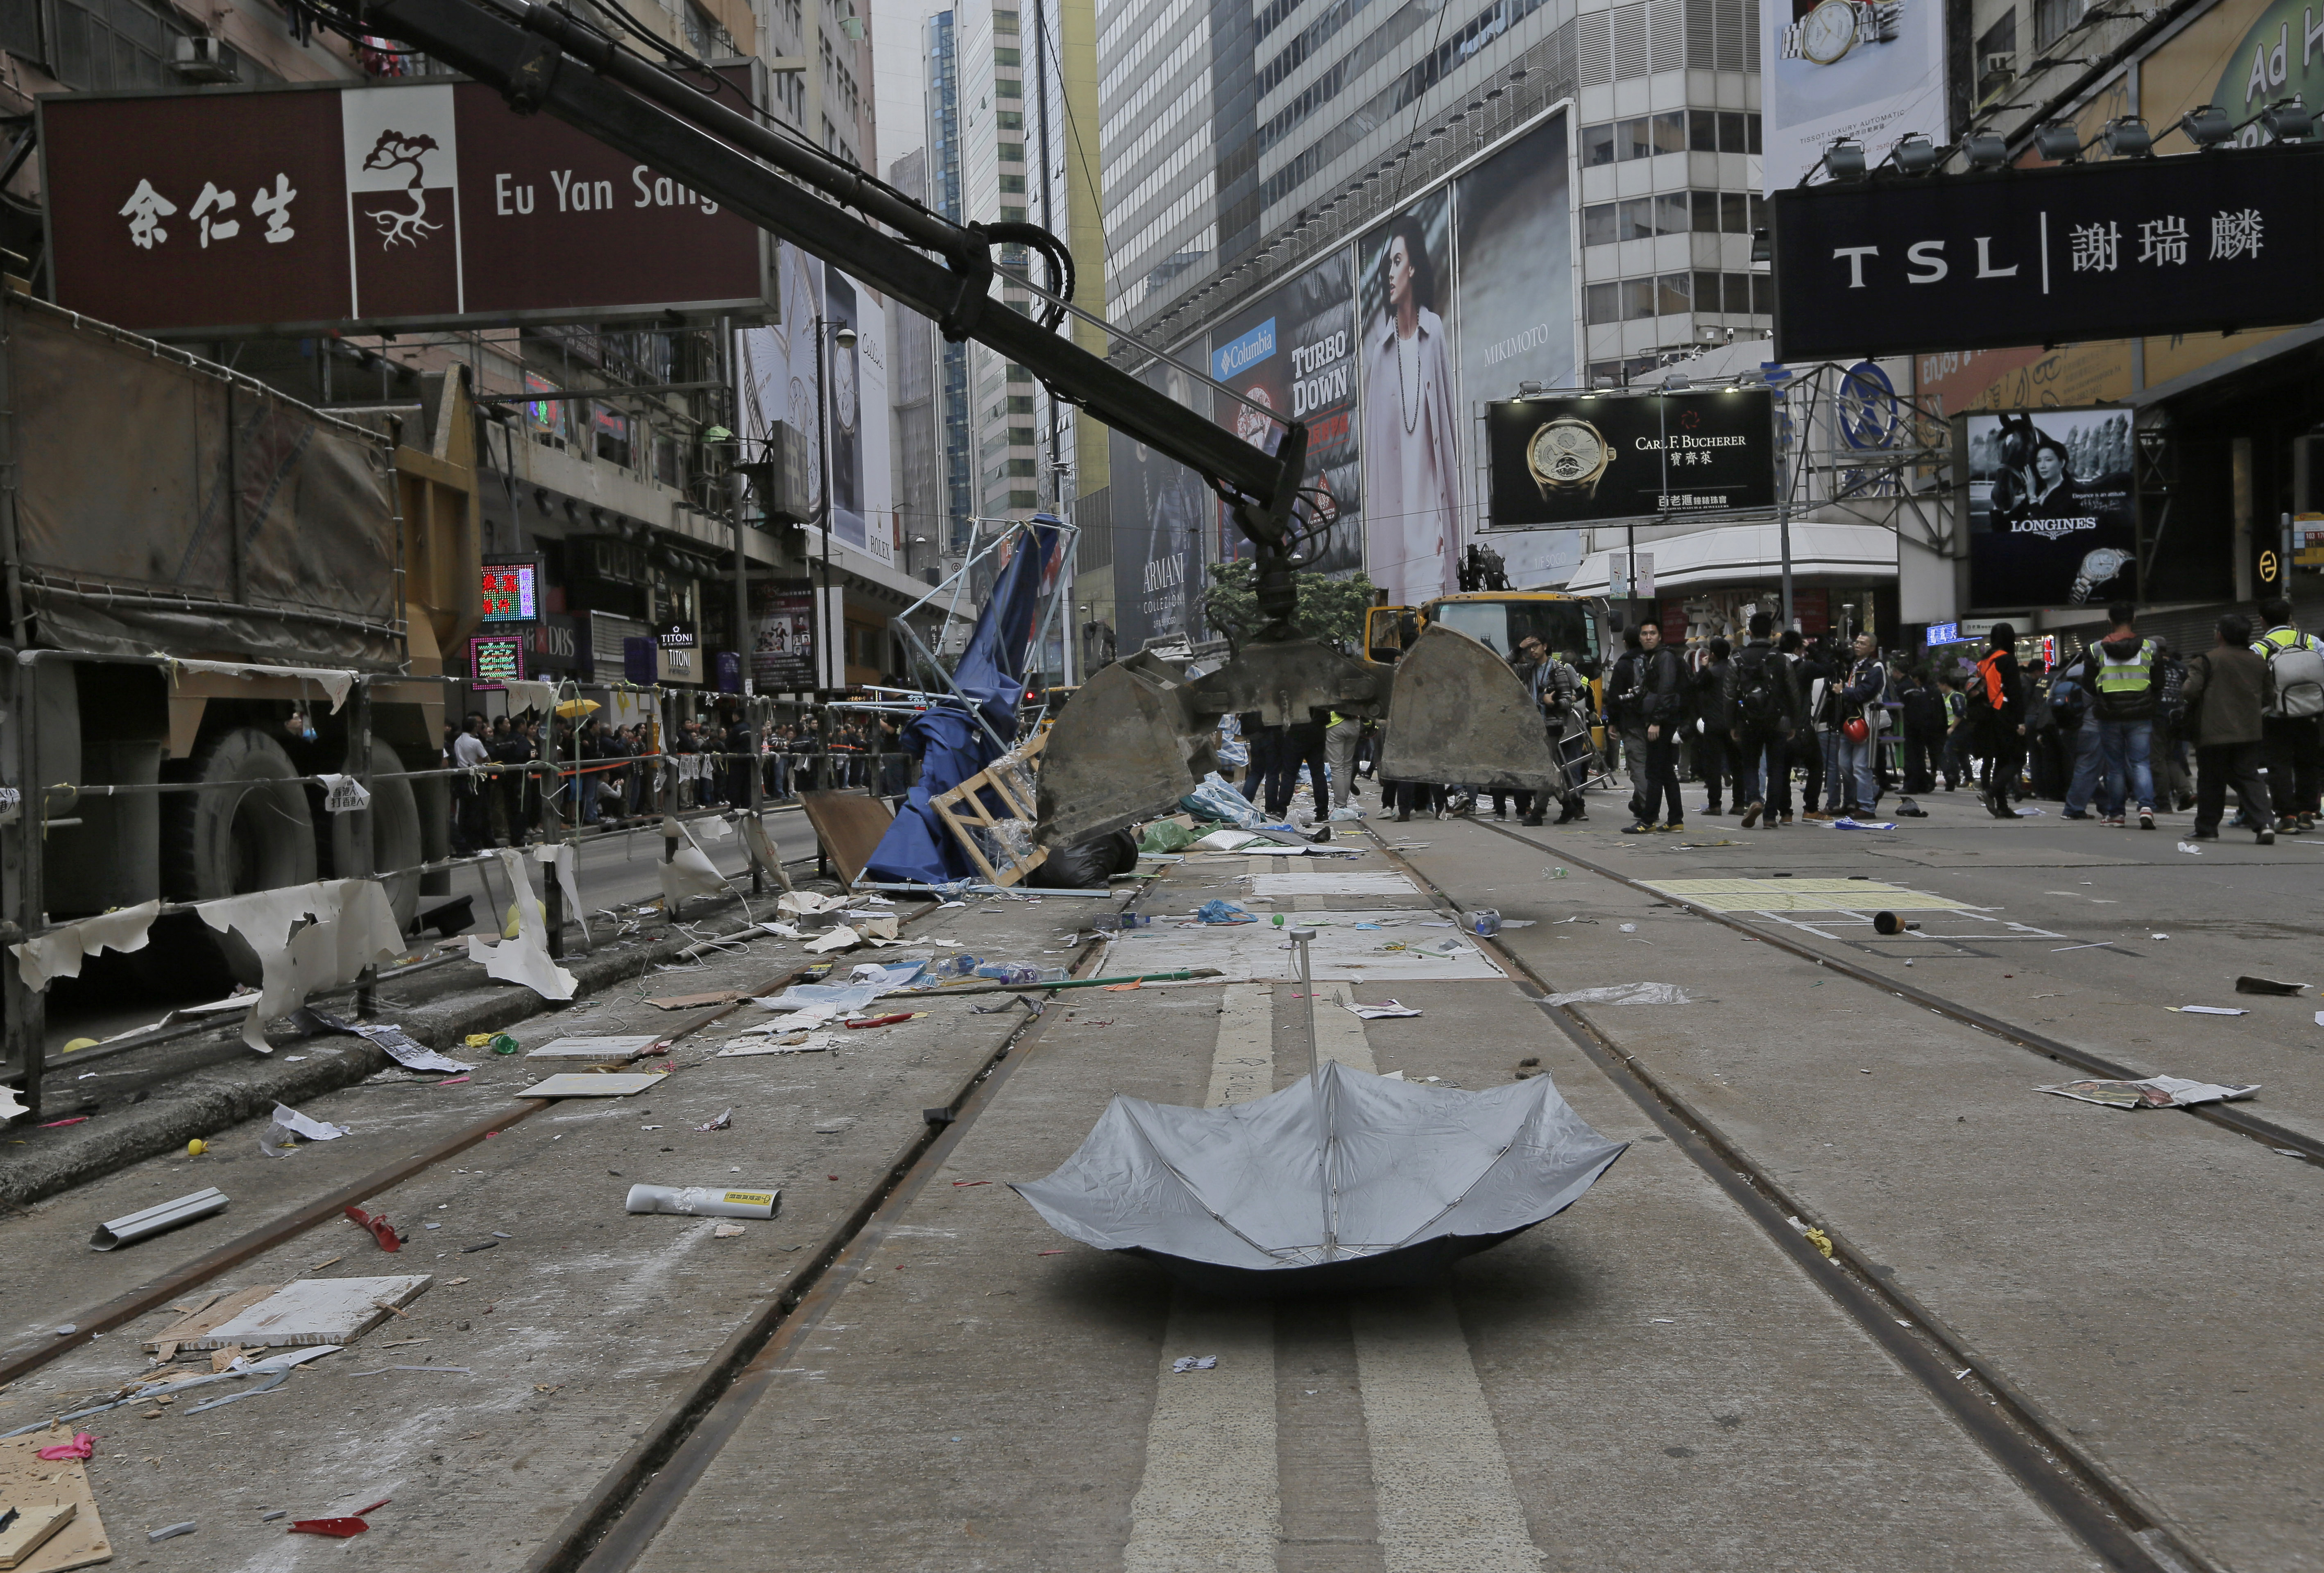 An excavation shovel is lowered to pick up an umbrella left behind by protesters as police clear barricades and tents on a main road in the occupied areas at Causeway Bay district in Hong Kong on Dec 15, 2014